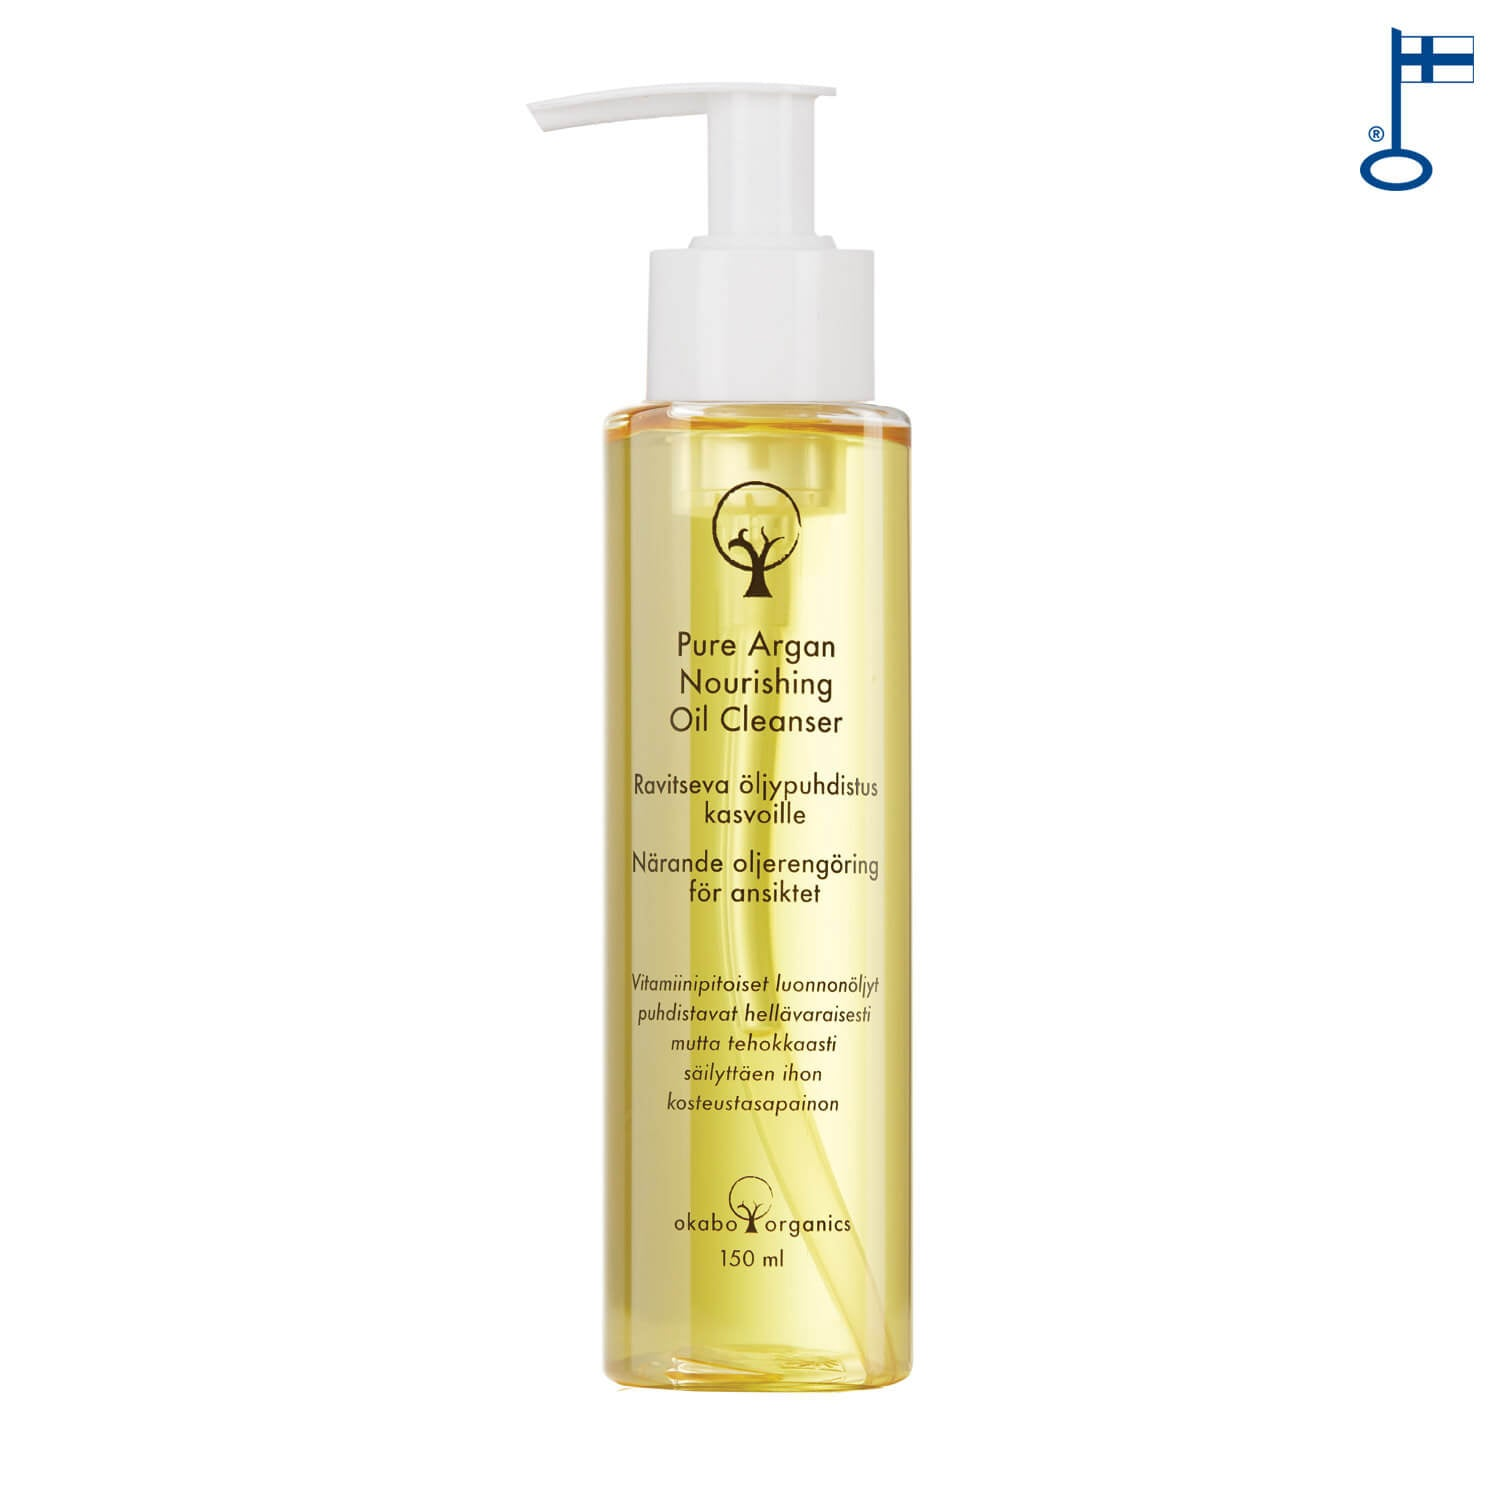 Pure Argan Nourishing Oil Cleanser, 150 ml